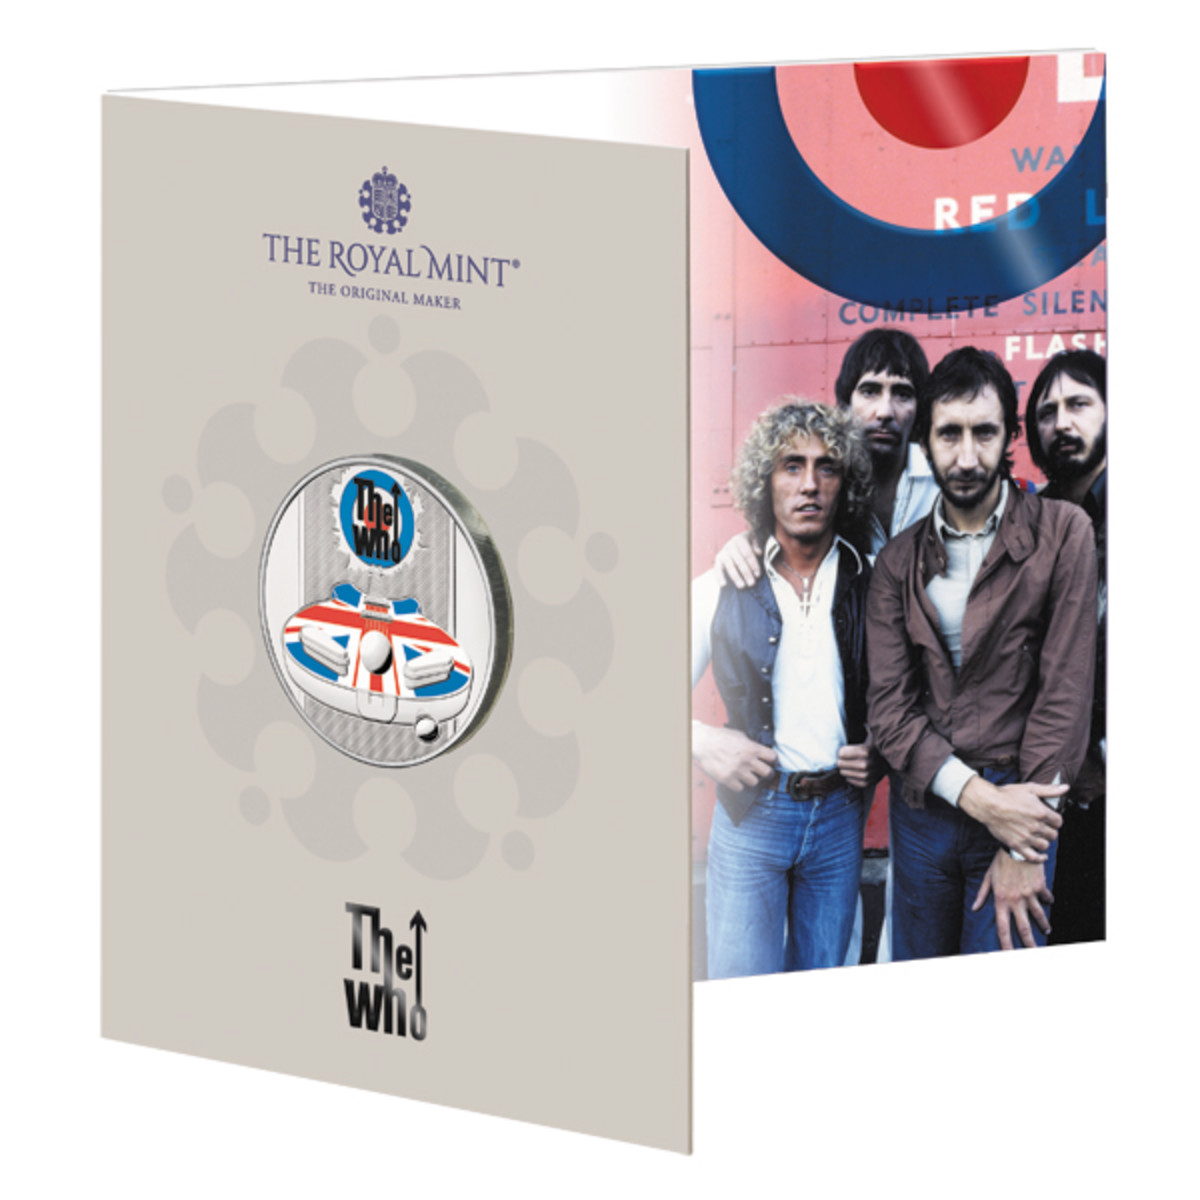 The Who as we remember them in the early days of their highly creative period in the midst of their greatest fame are featured on the card cover art for the pad printed BU copper-nickel packaging.